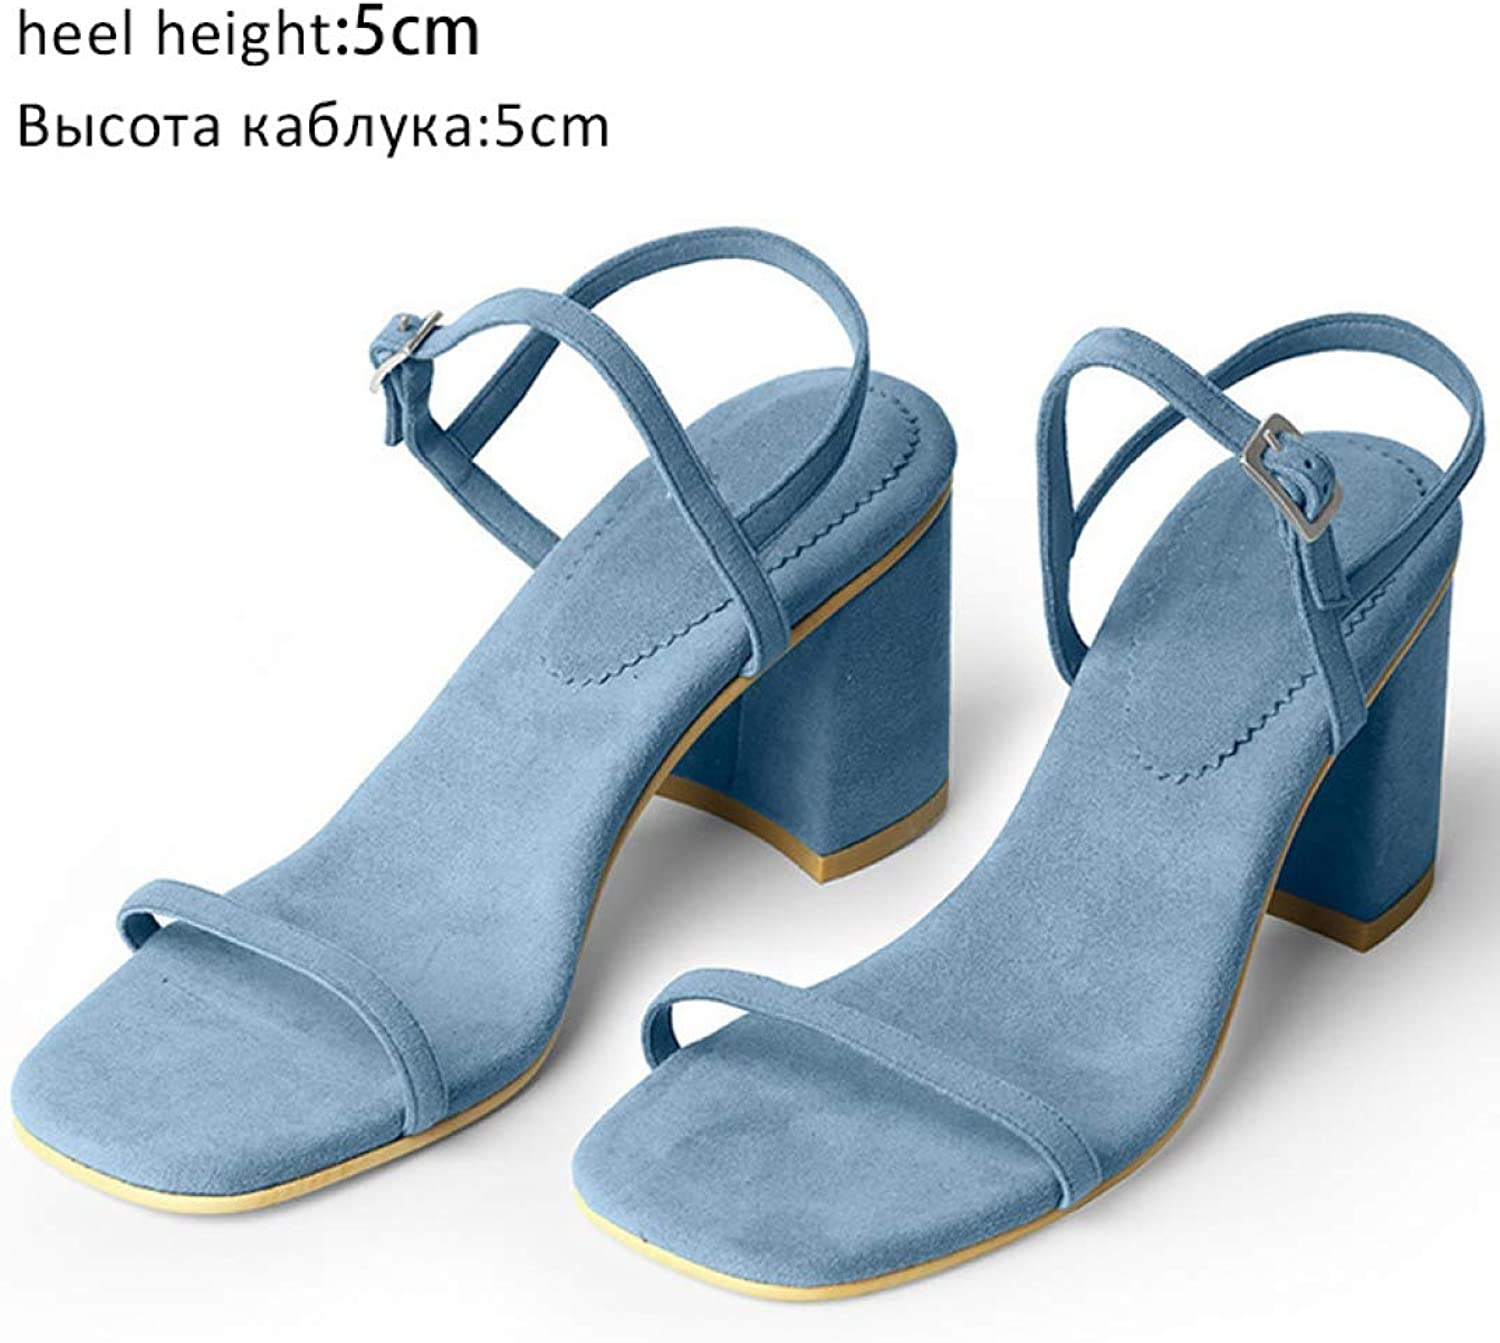 T-JULY Women's Sandal Open Toe Buckle Strap Thick Heel Summer High Heels Ankle Strap Party Beach shoes